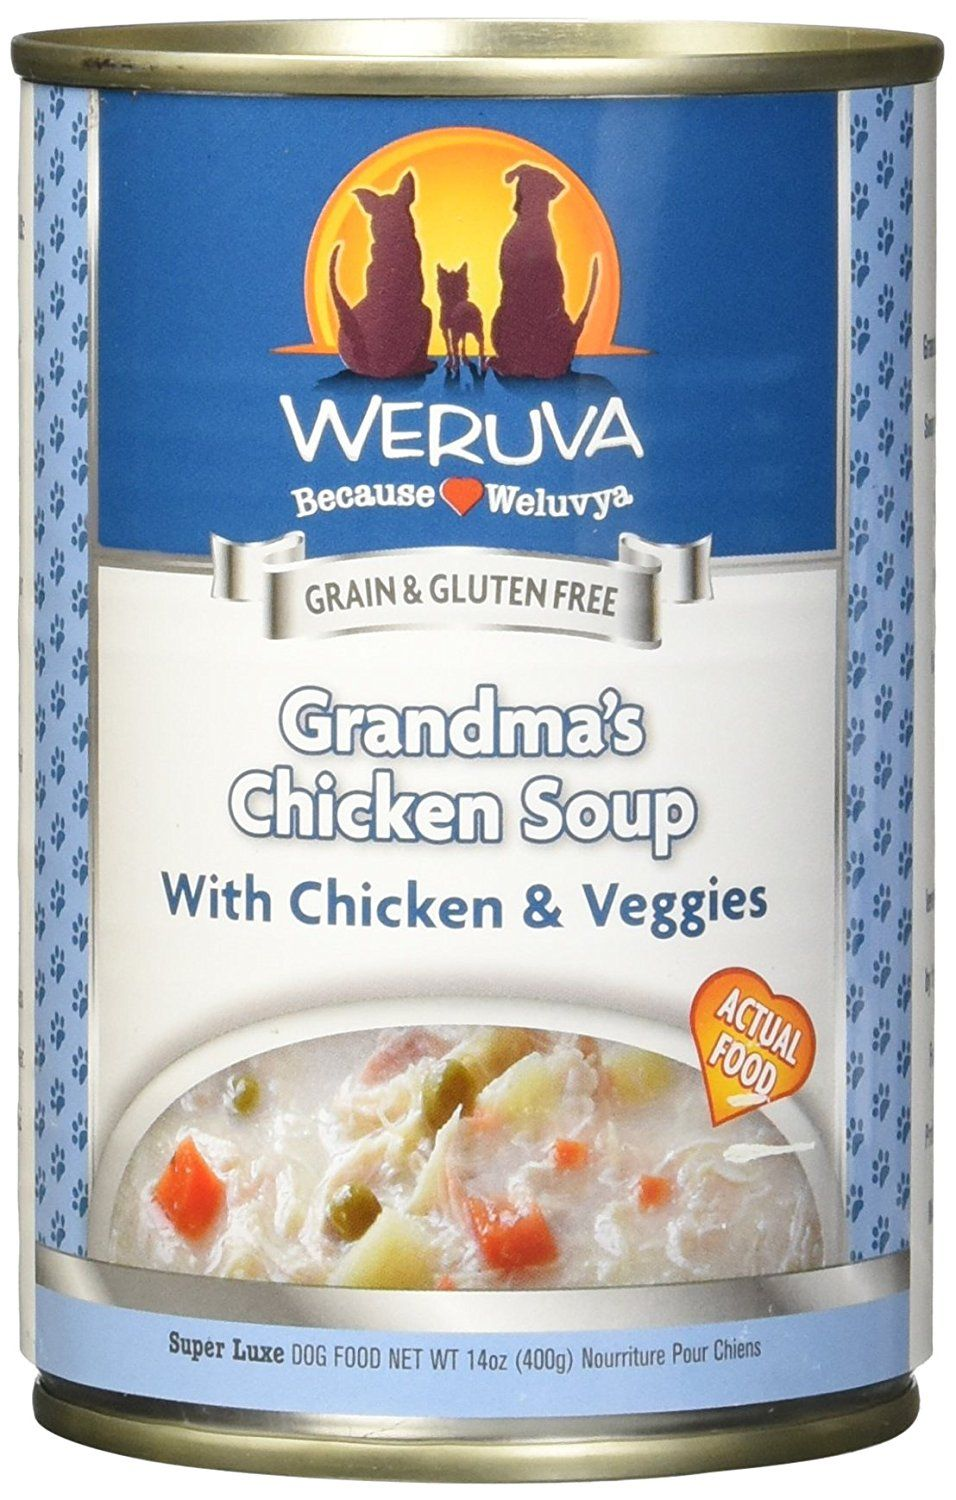 Weruva Grandma S Chicken Soup Dog Cans Food 12 Pack 14 Oz You Can Find Out More Details At The Link Of The Image Dog Food Recipes Wet Dog Food Food Net